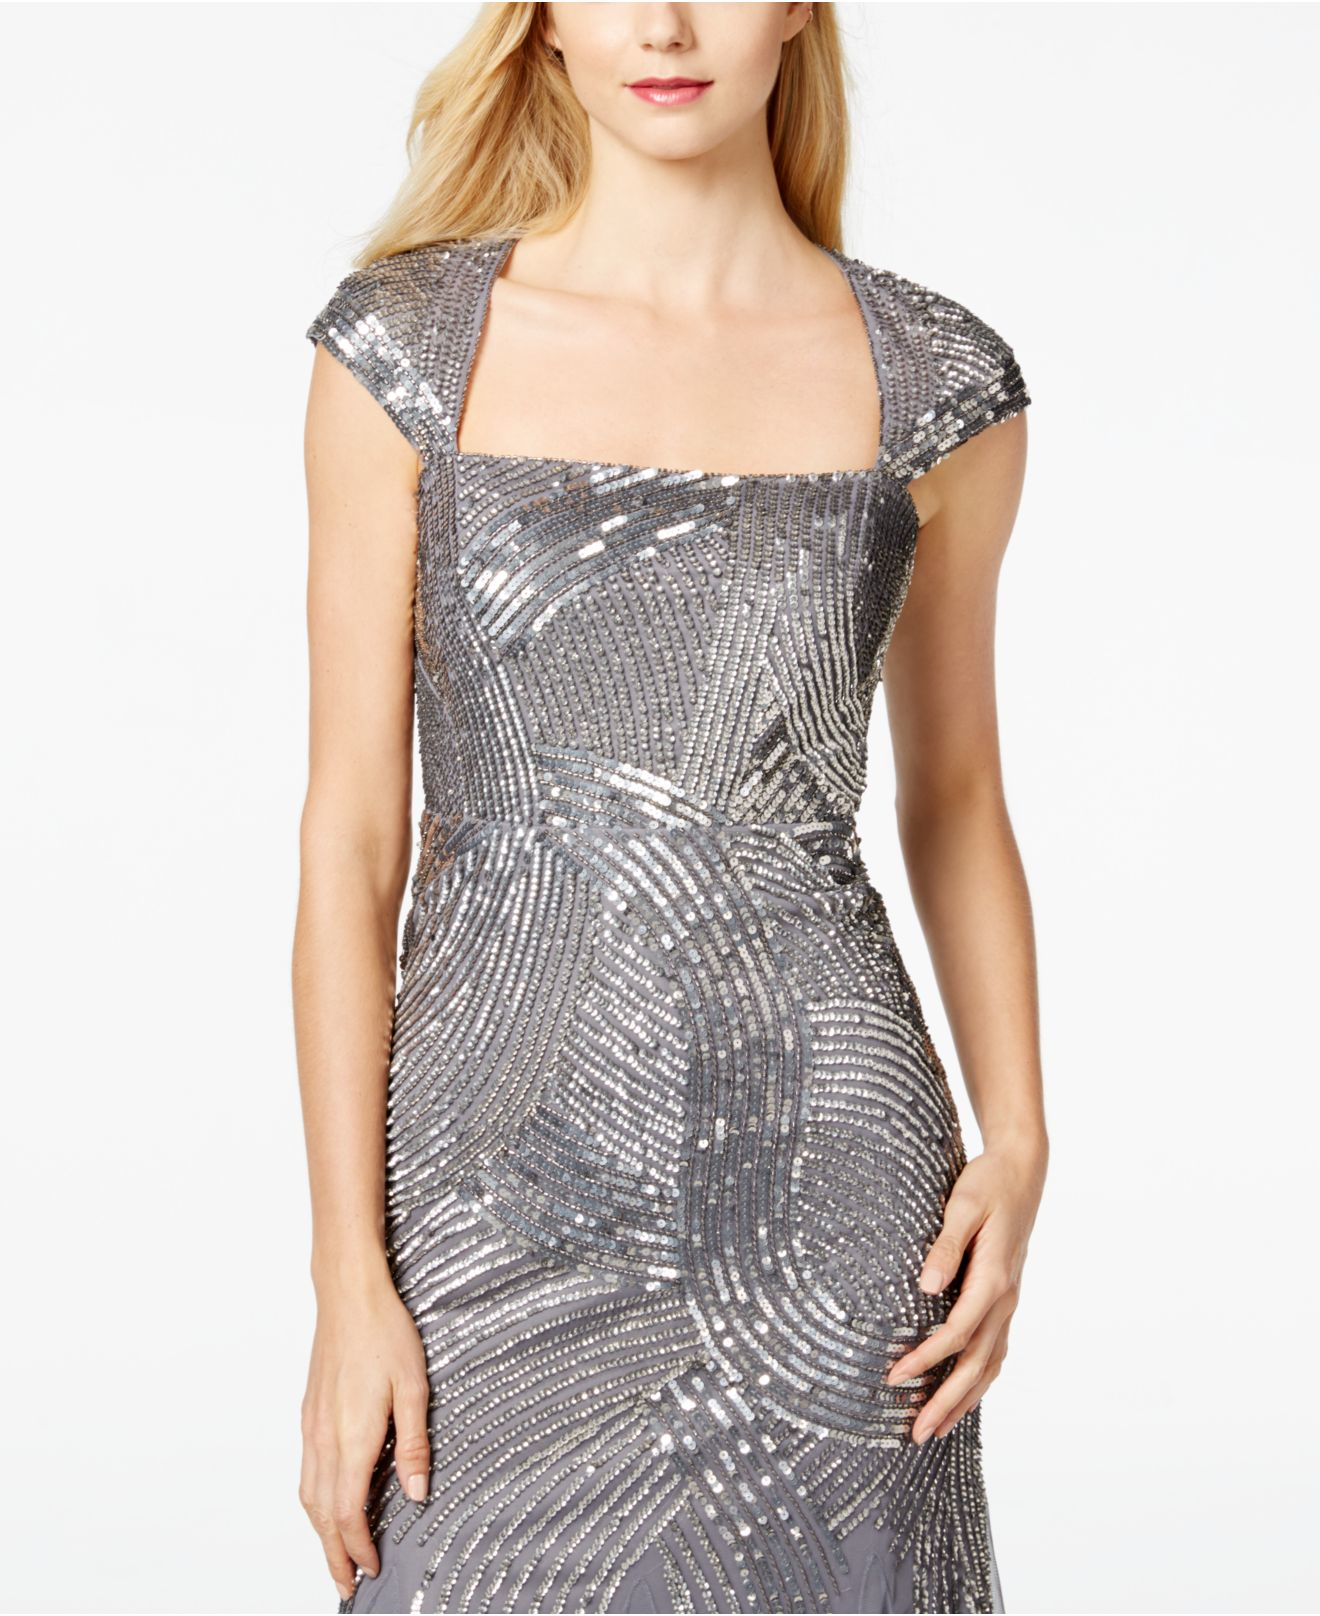 Adrianna Papell NEW Silver Sequined Women\'s Size 4 Evening Gown $229 ...